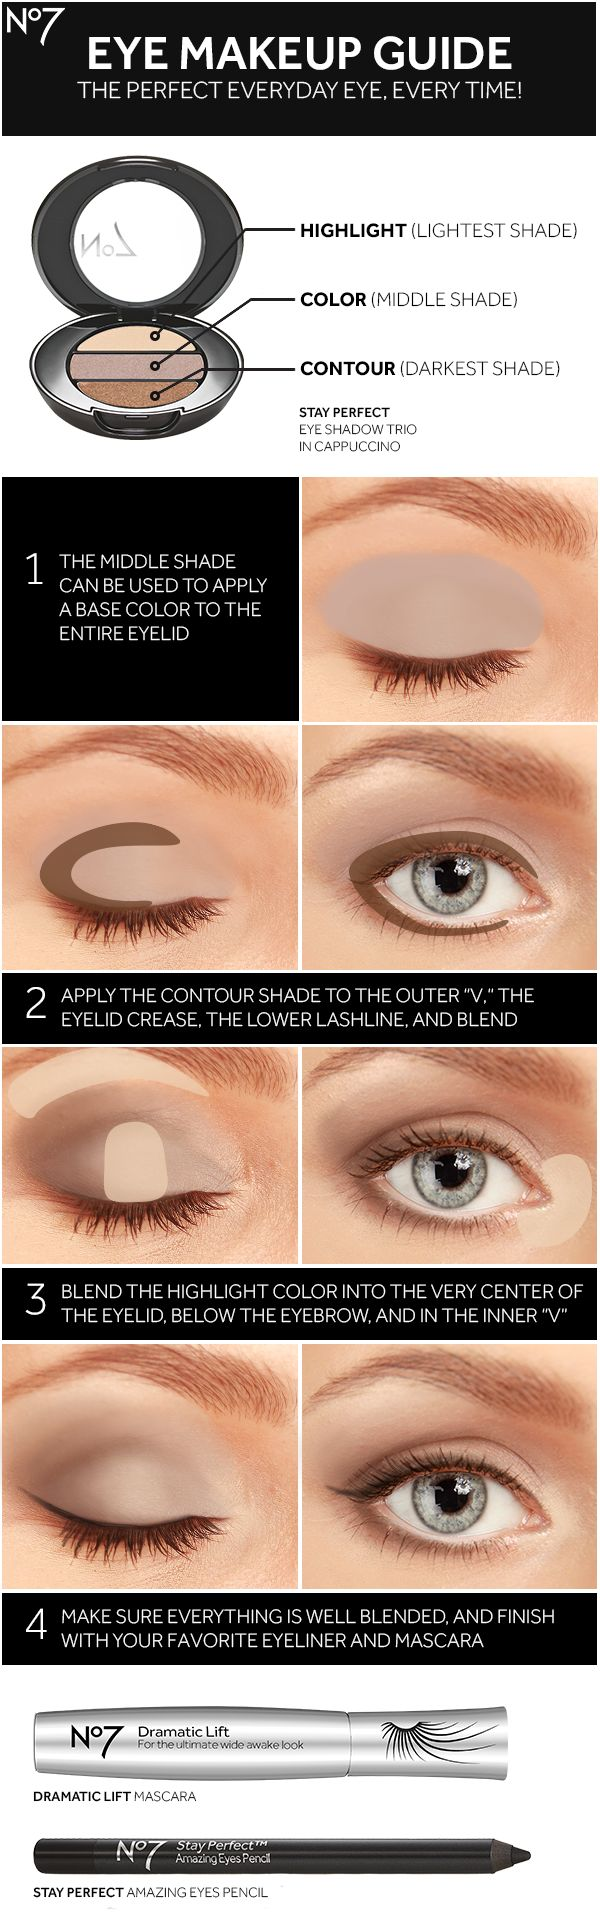 Sharpen your eye makeup skills with No7 eye shadow, mascara, eyeliner and this how-to guide for a brighter, bigger look. | Beauty Tips & Tricks  https://www.aliexpress.com/